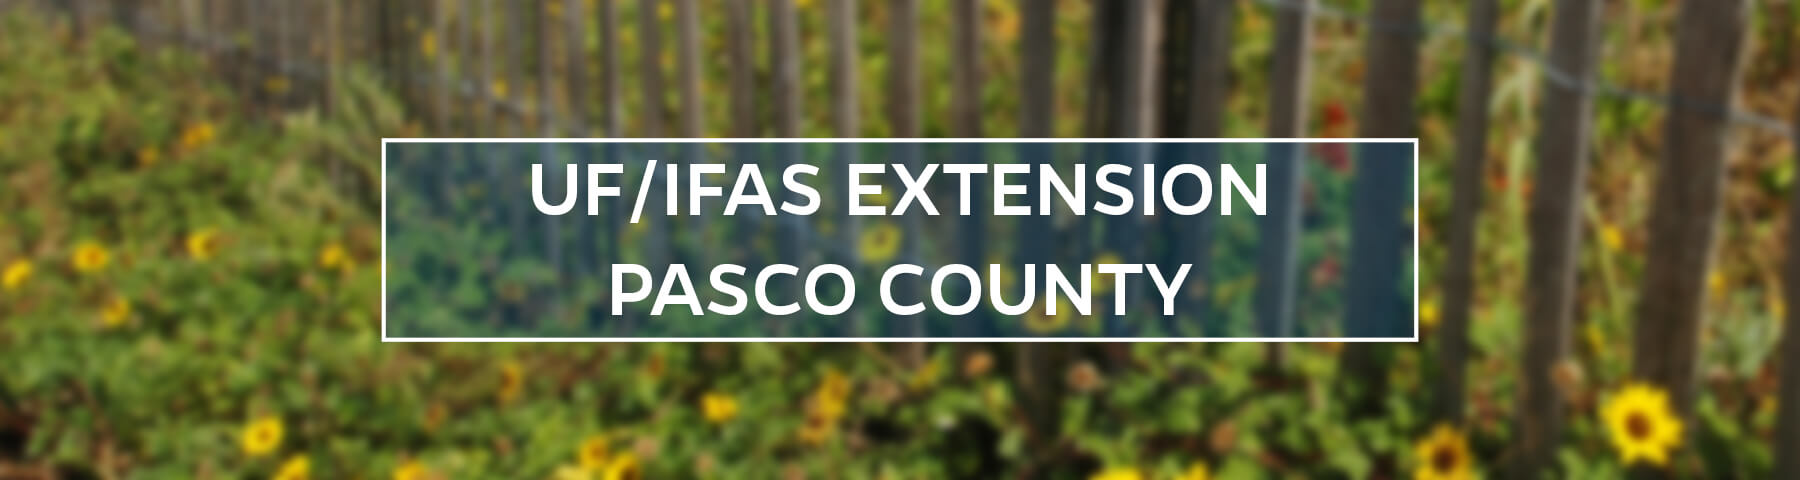 UF/IFAS Extension Pasco County